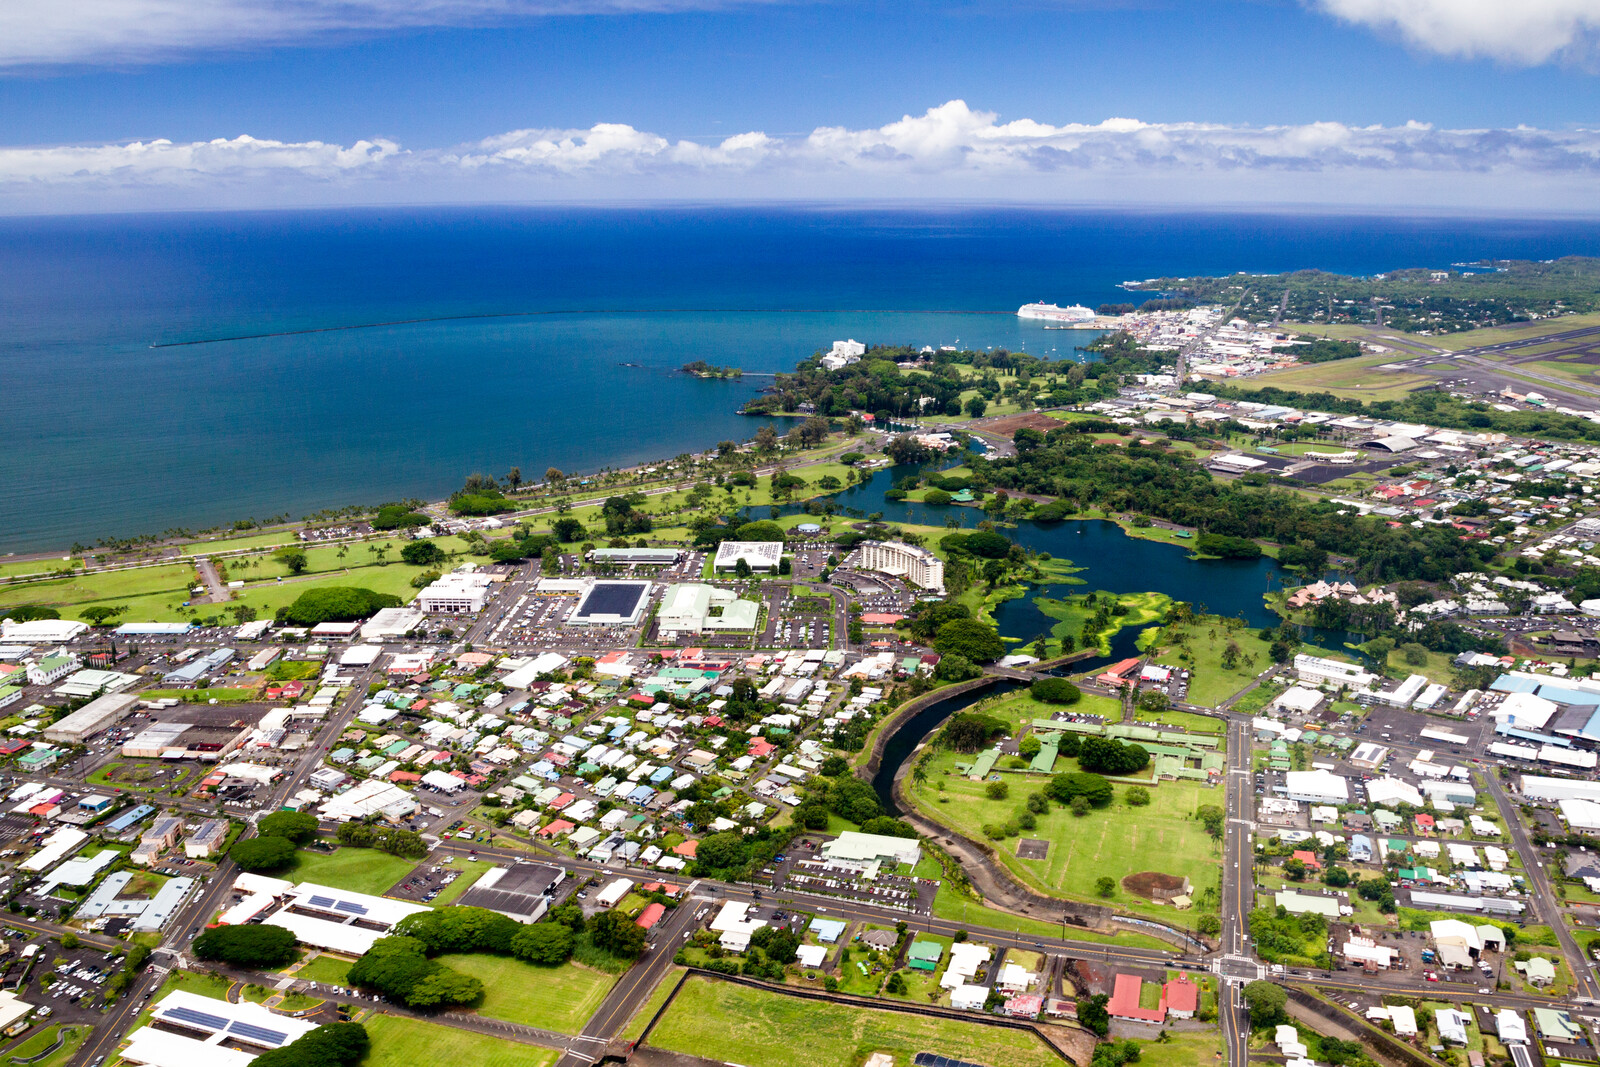 Arial view of Hilo city with green grass and trees with Bright blue skies melting into dark blue waters that turn turquiose closer to shore.